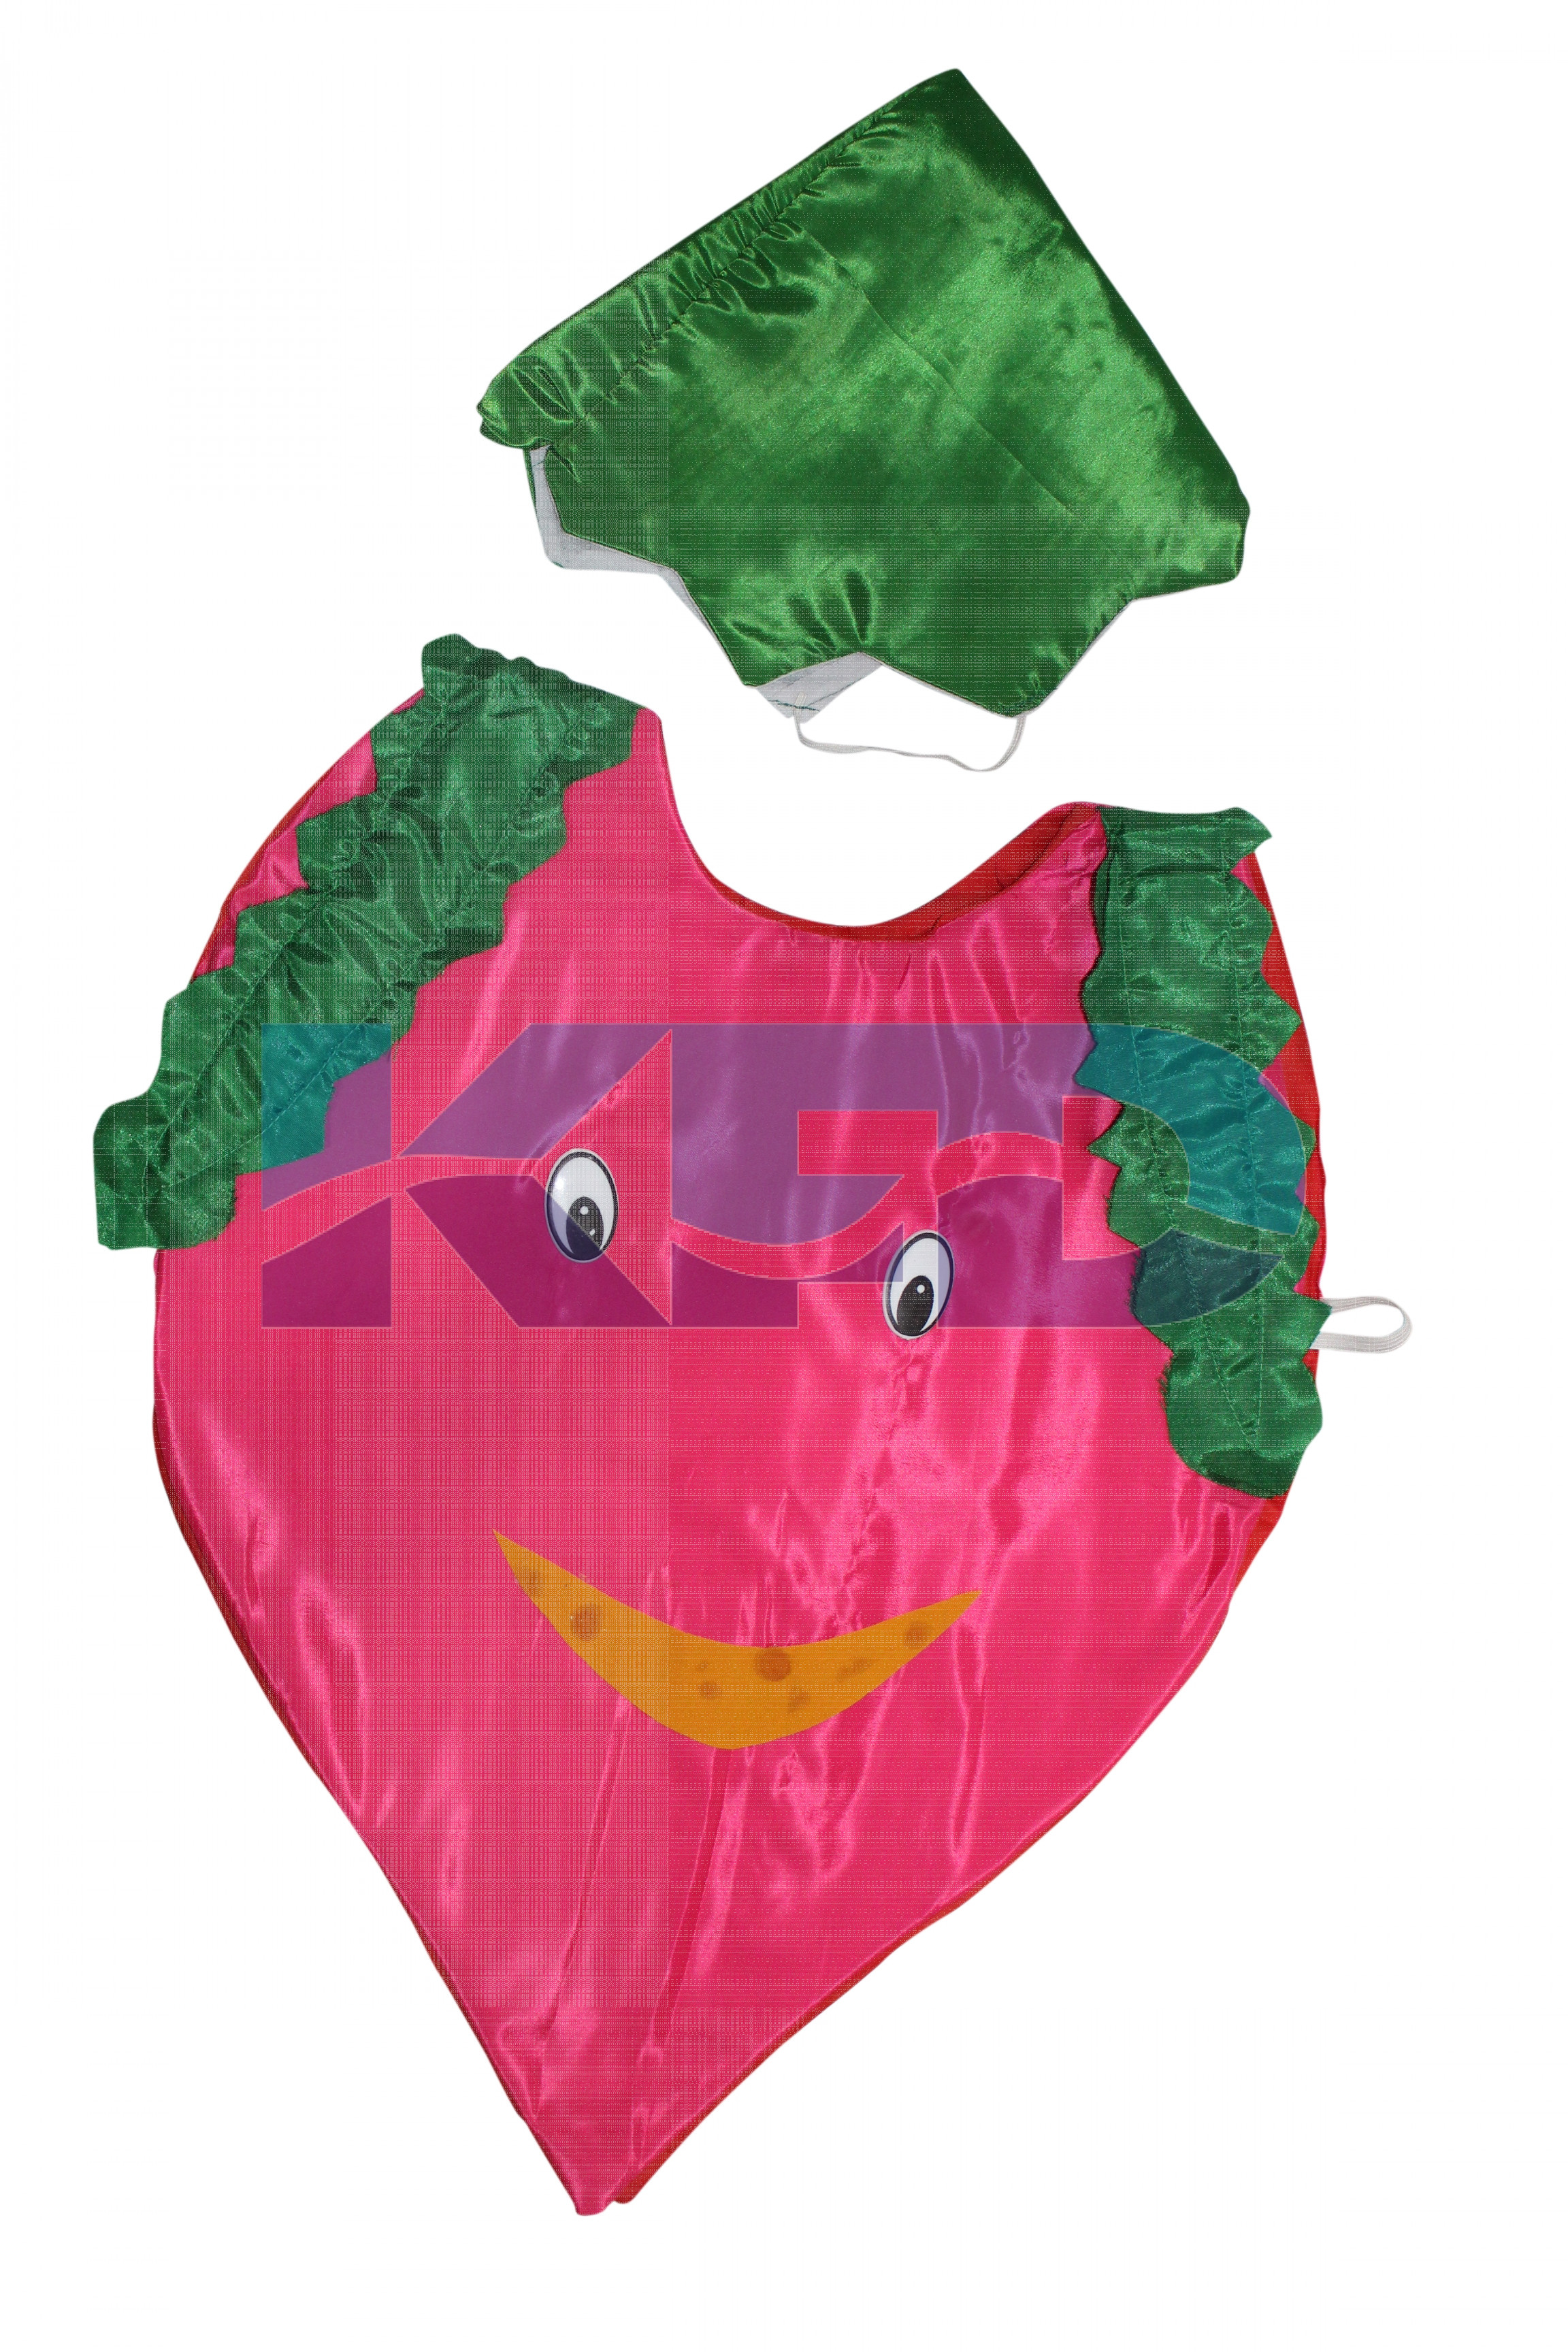 Onion Vegetables Costume only cutout with Cap for Annual function/Theme Party/Competition/Stage Shows/Birthday Party Dress